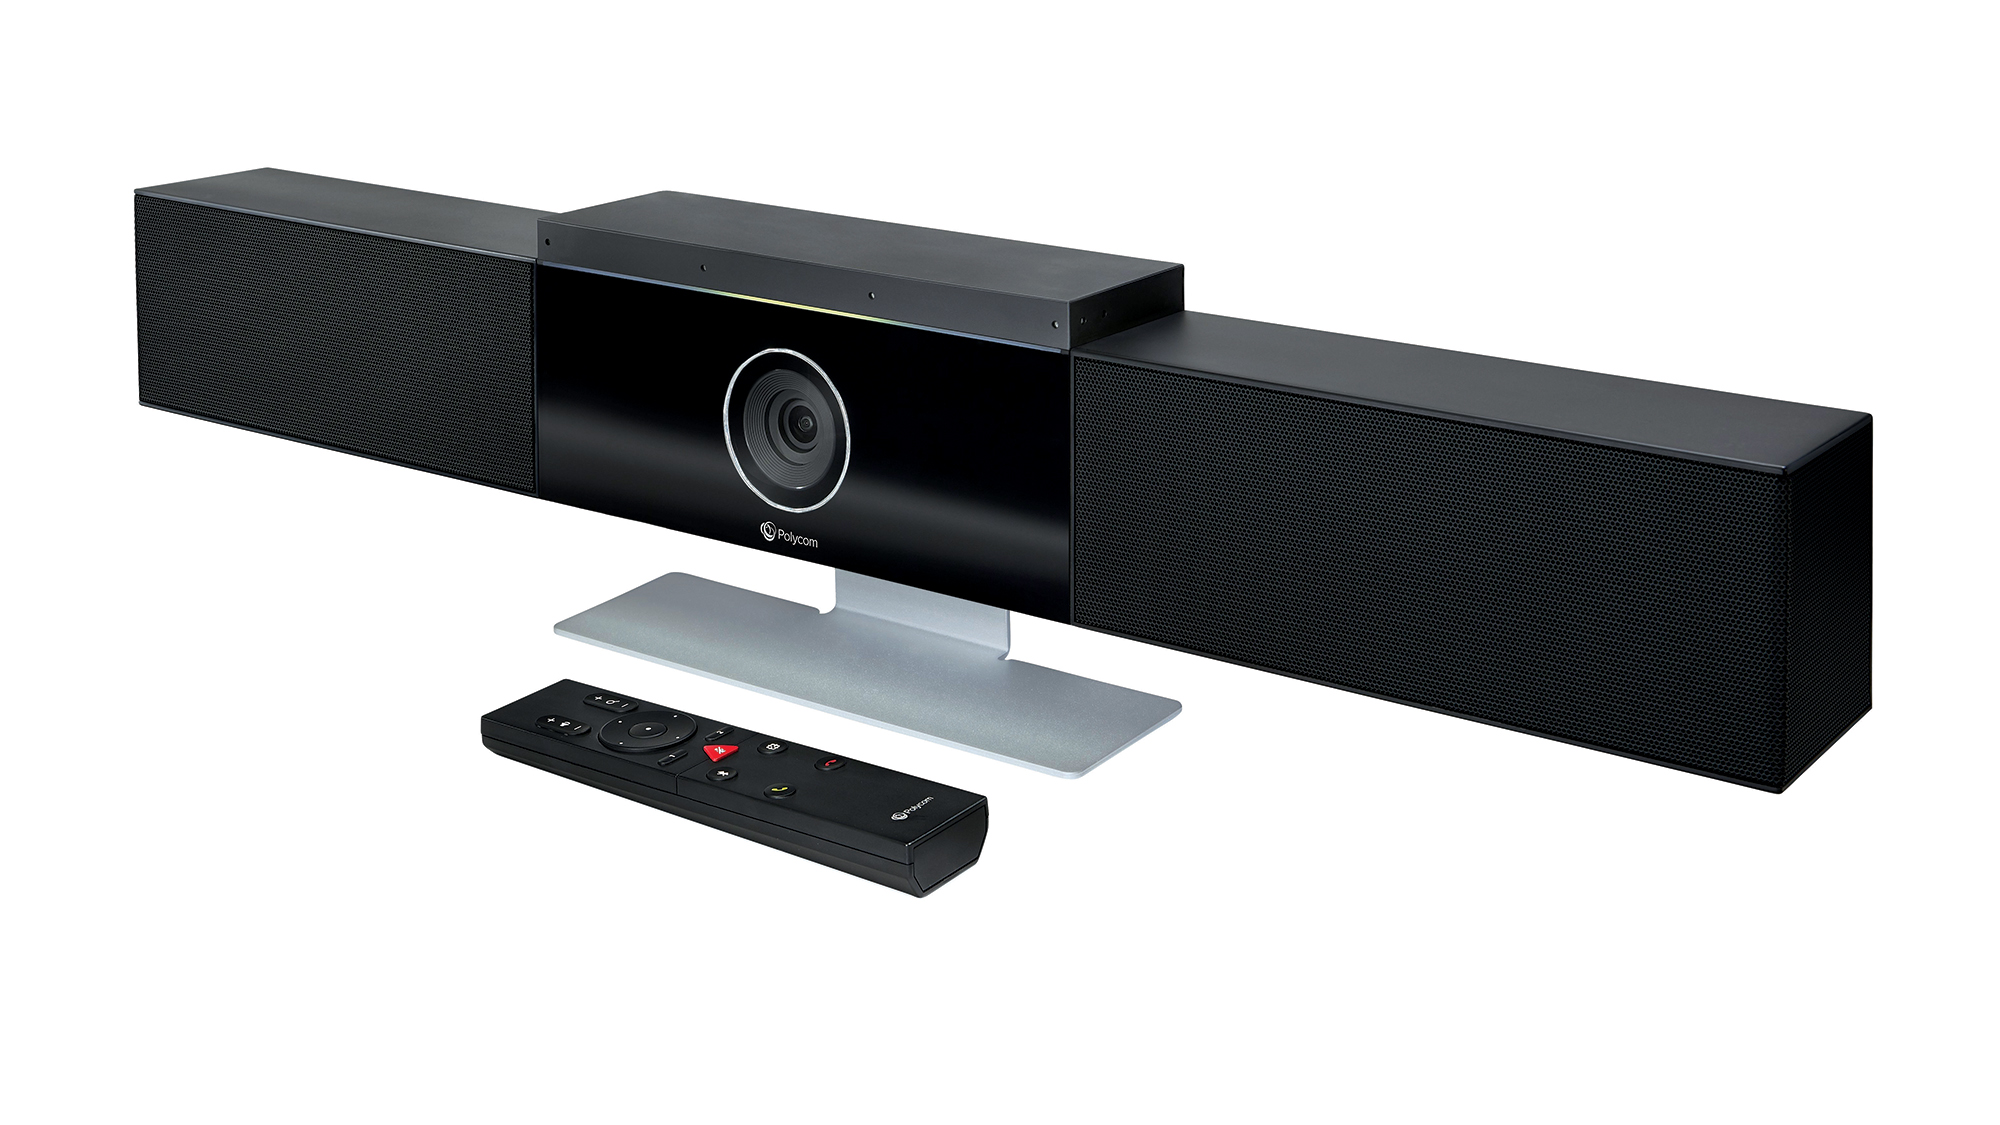 Poly Studio review: Take the pain out of videoconferencing